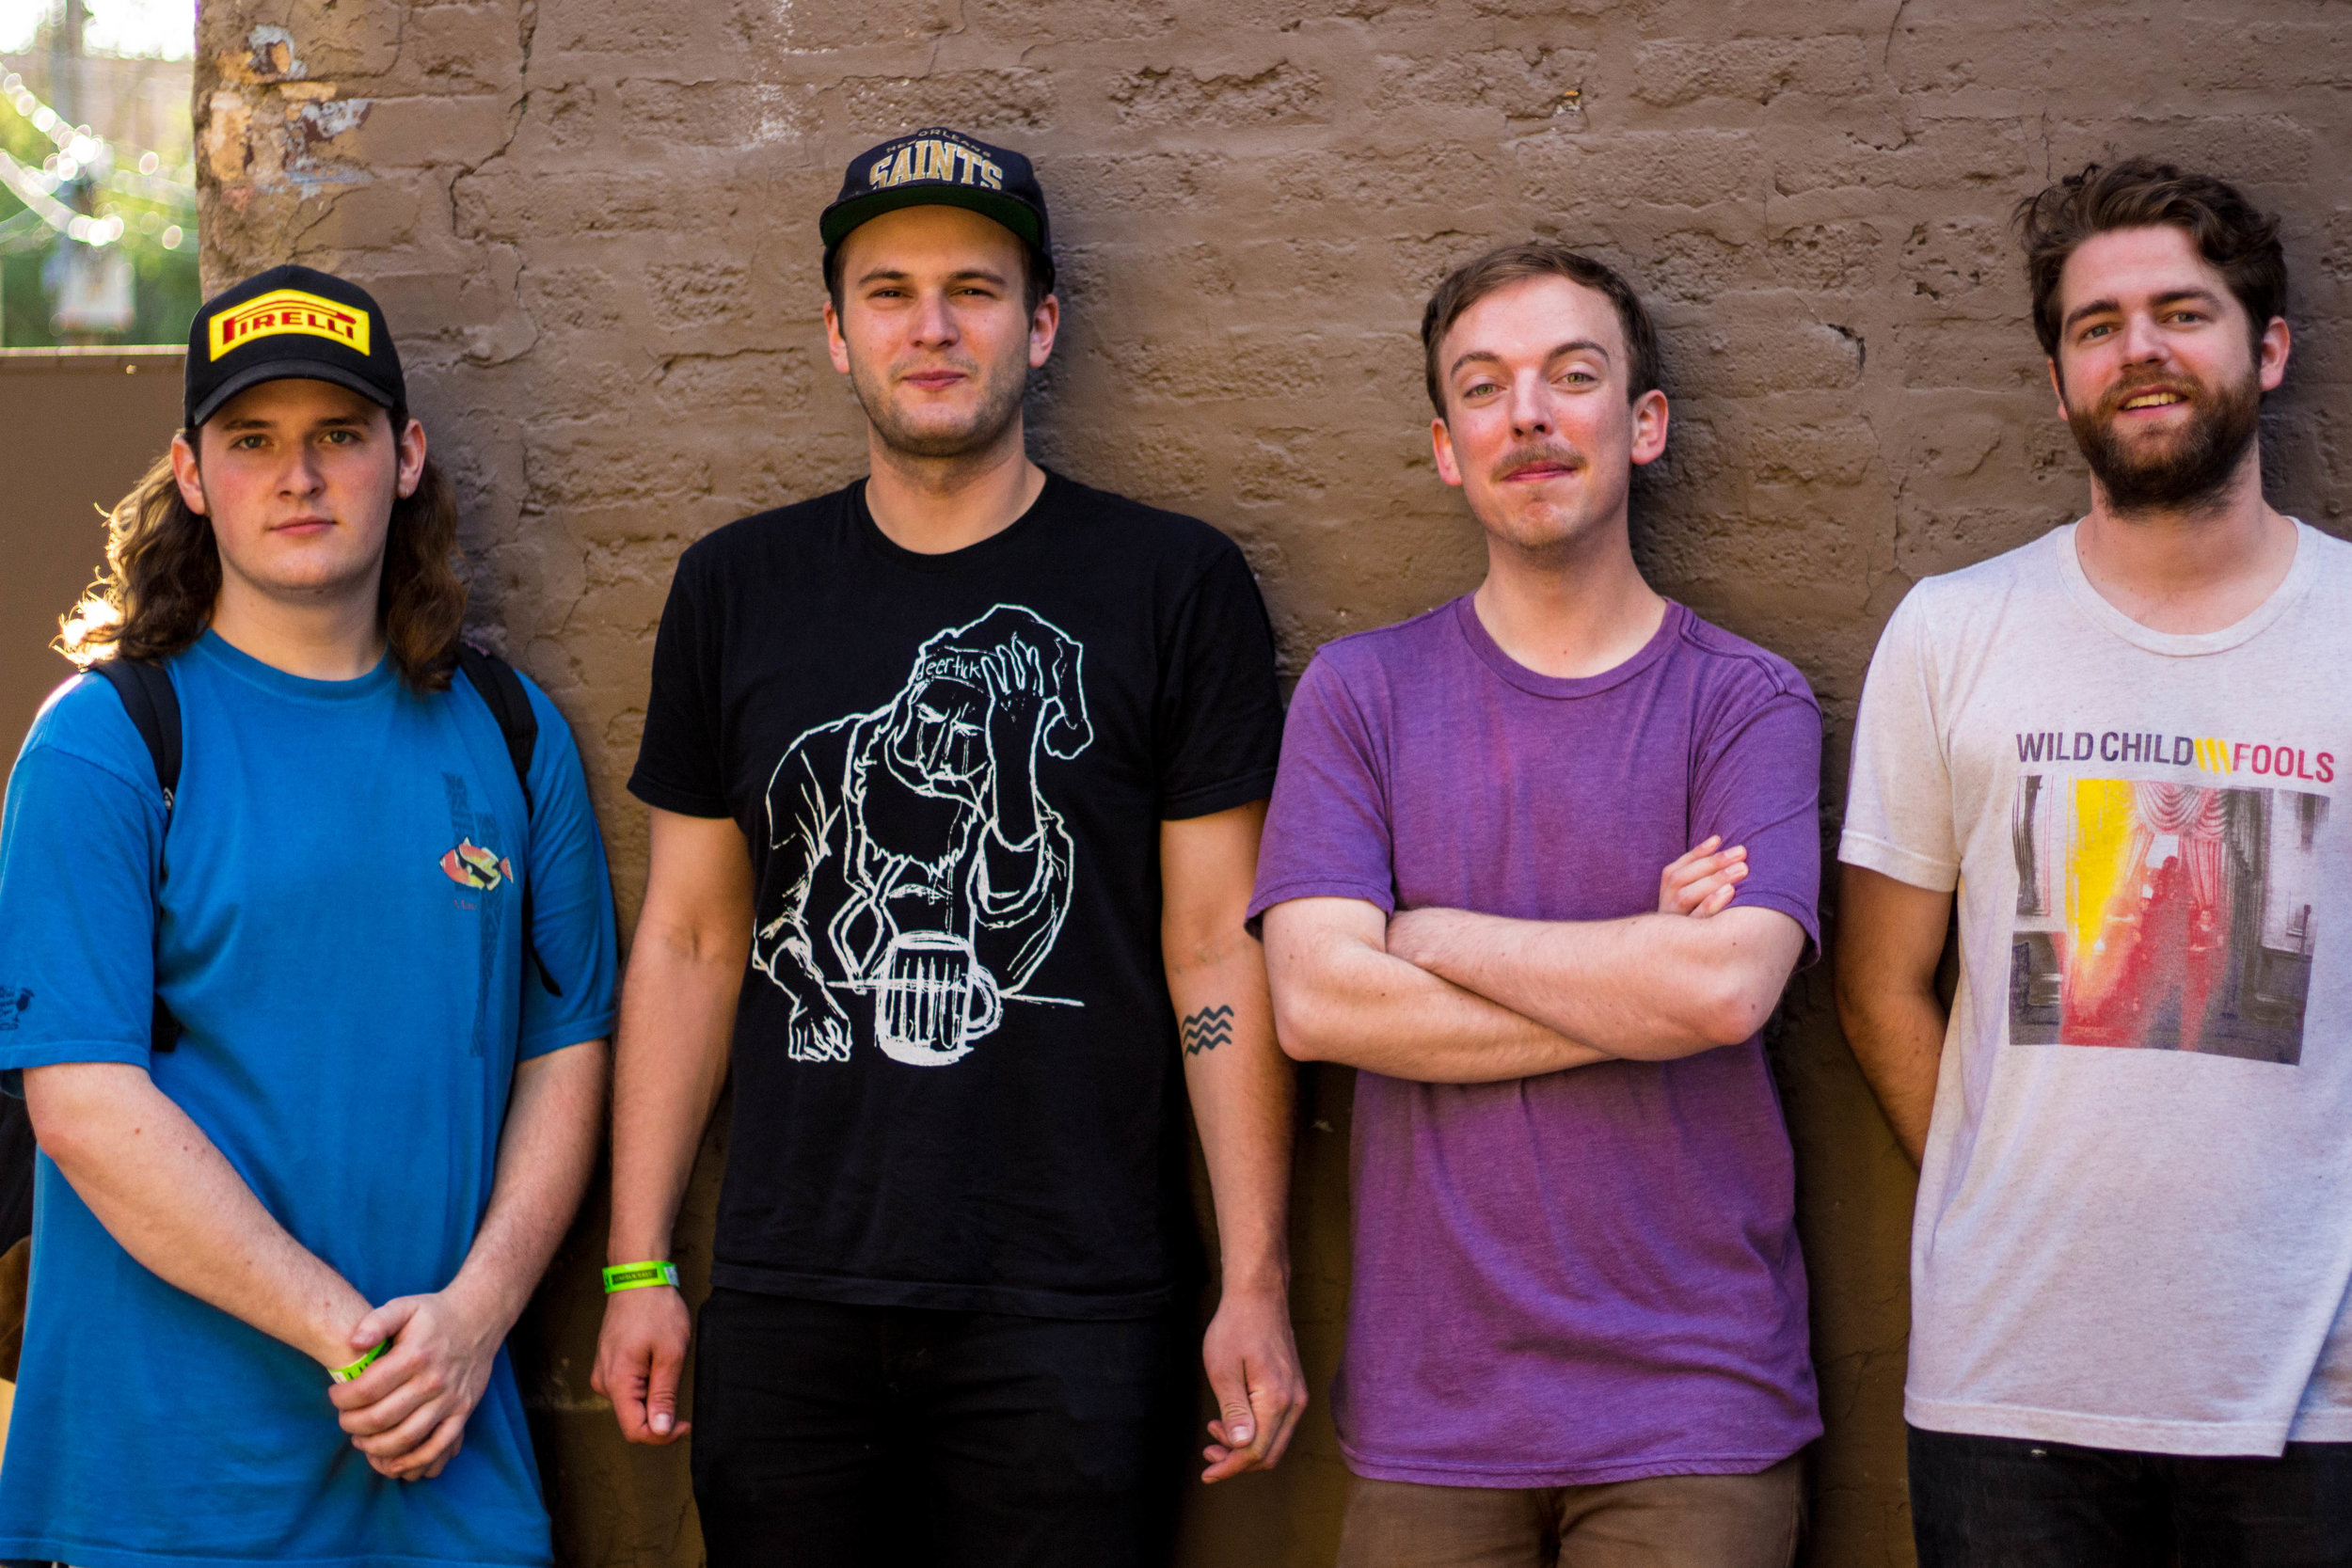 Twinsmith at Lincoln Hall on June 22nd, 2017  Left to Right: Jake Newbold, Matt Regner, Bill Sharp, and Jordan Smith.